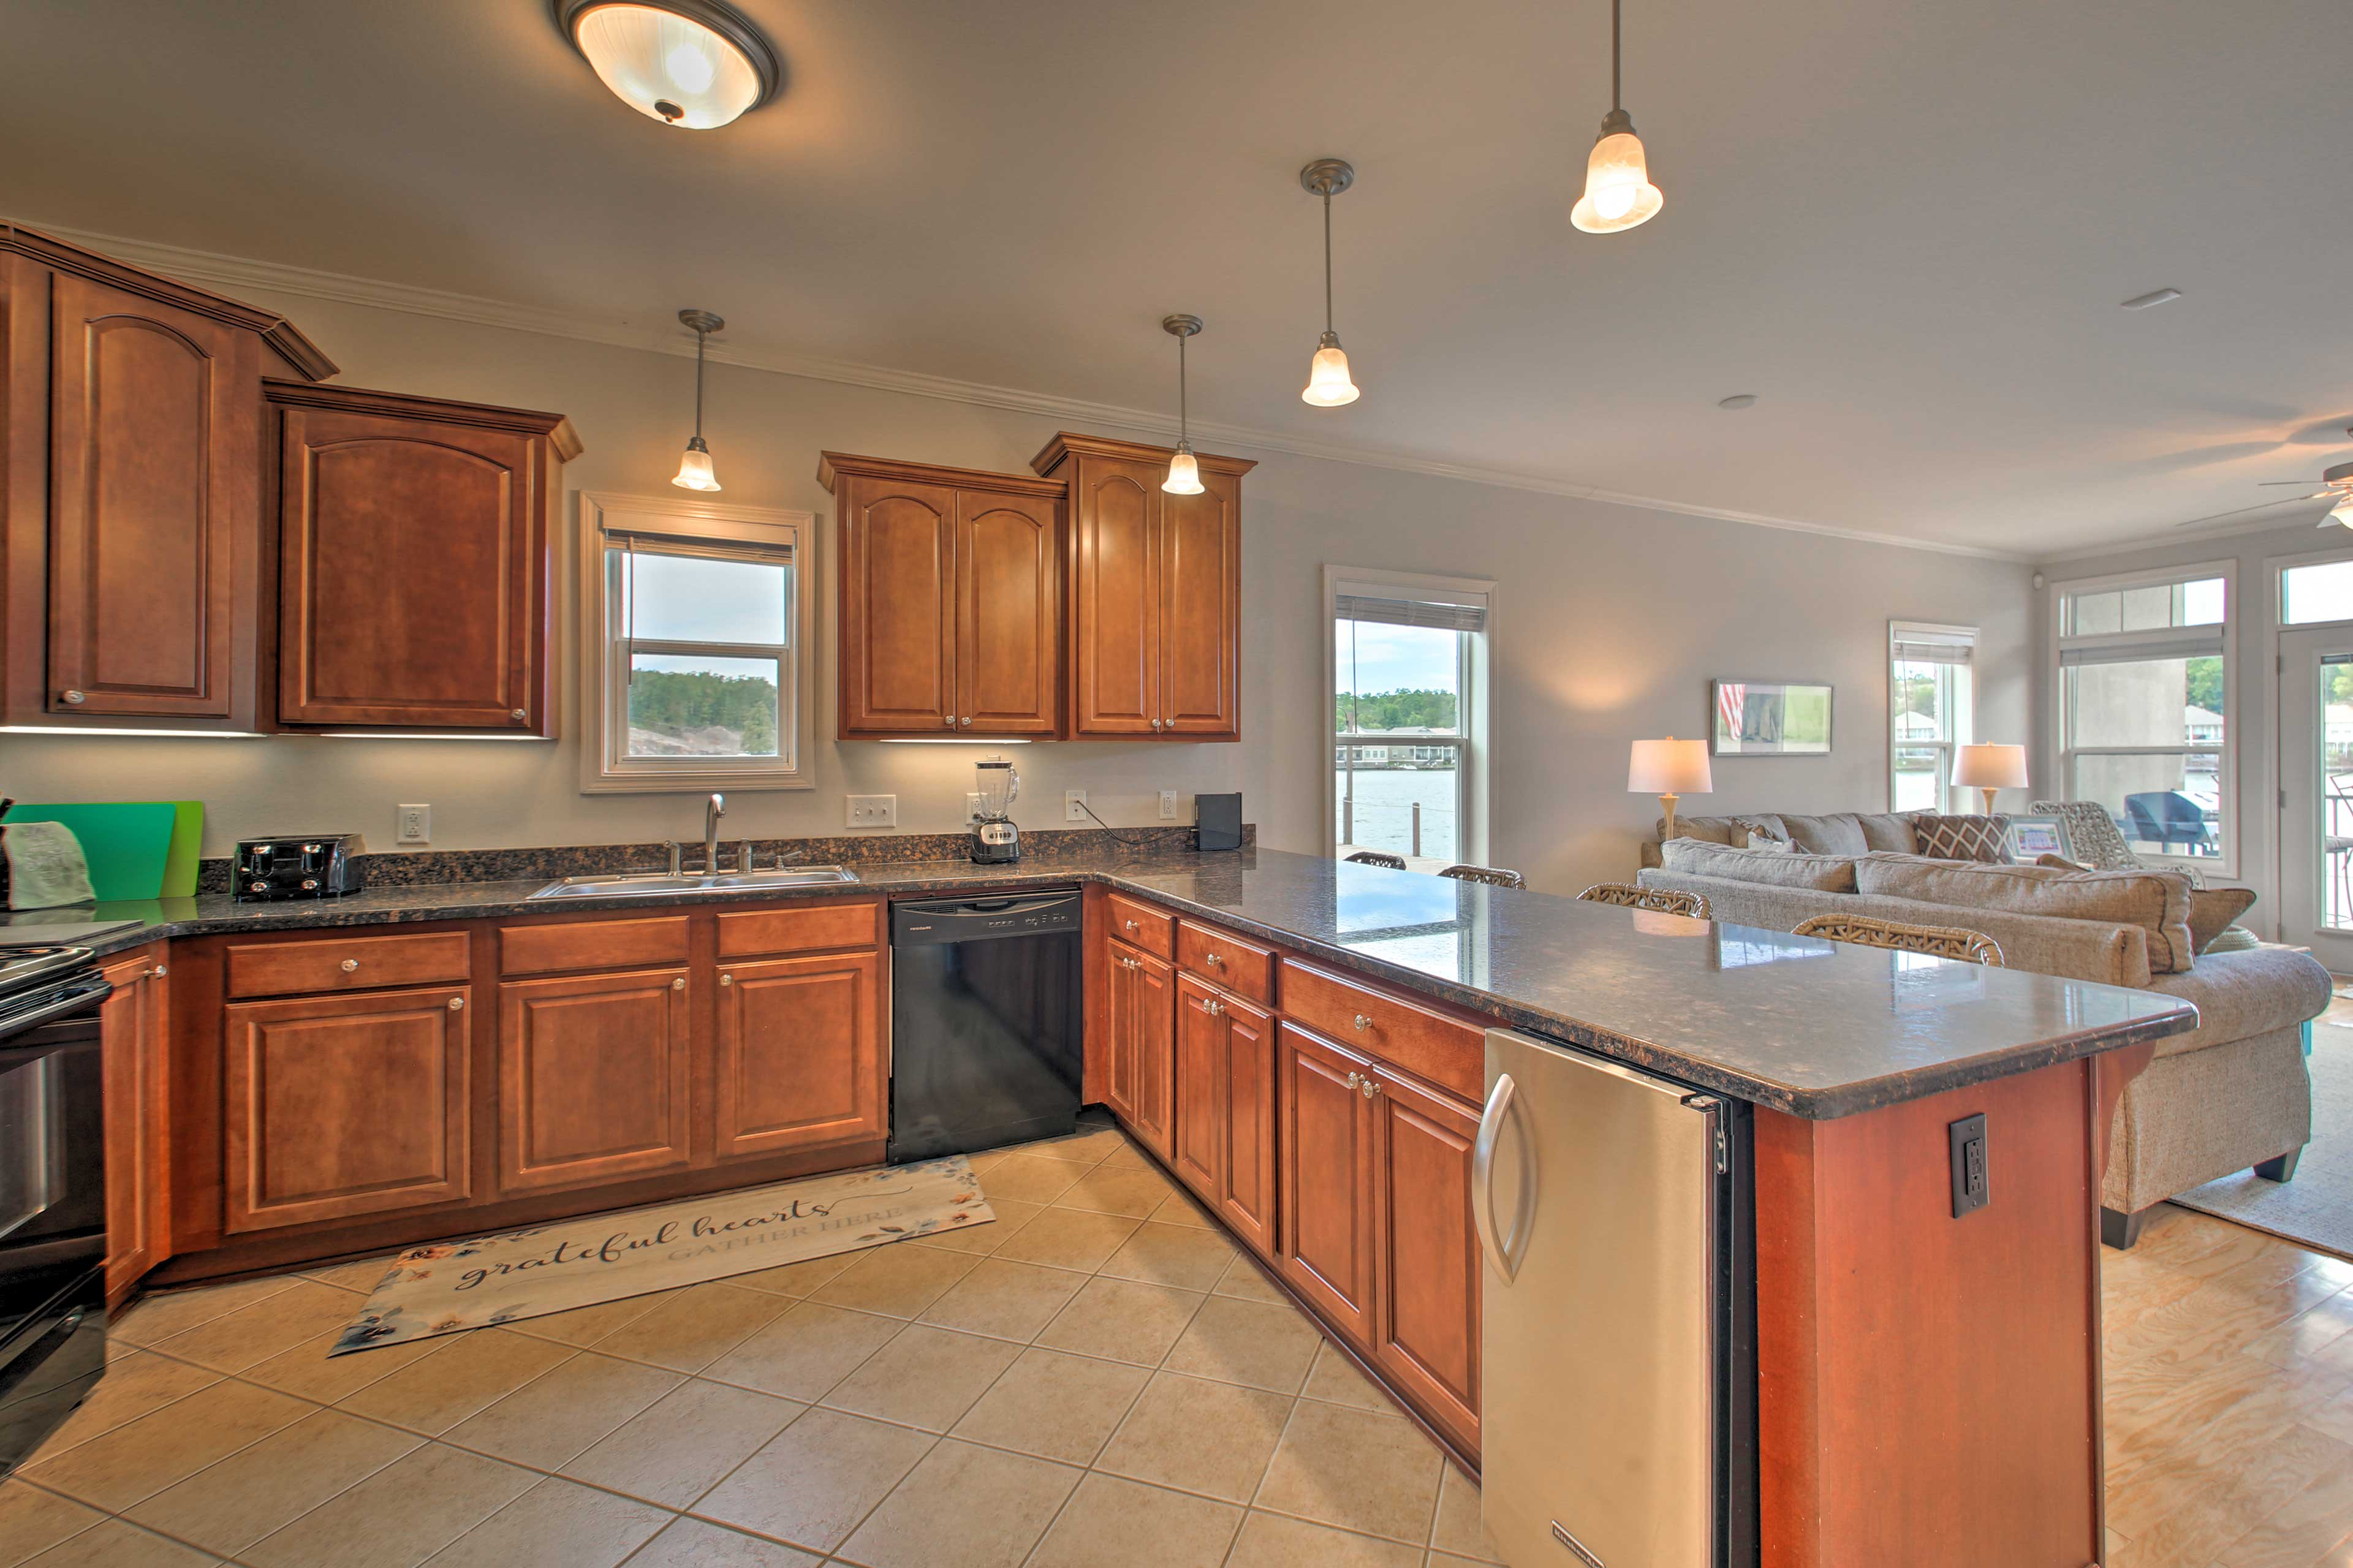 There's ample counter space for you and your sous chefs to spread out.